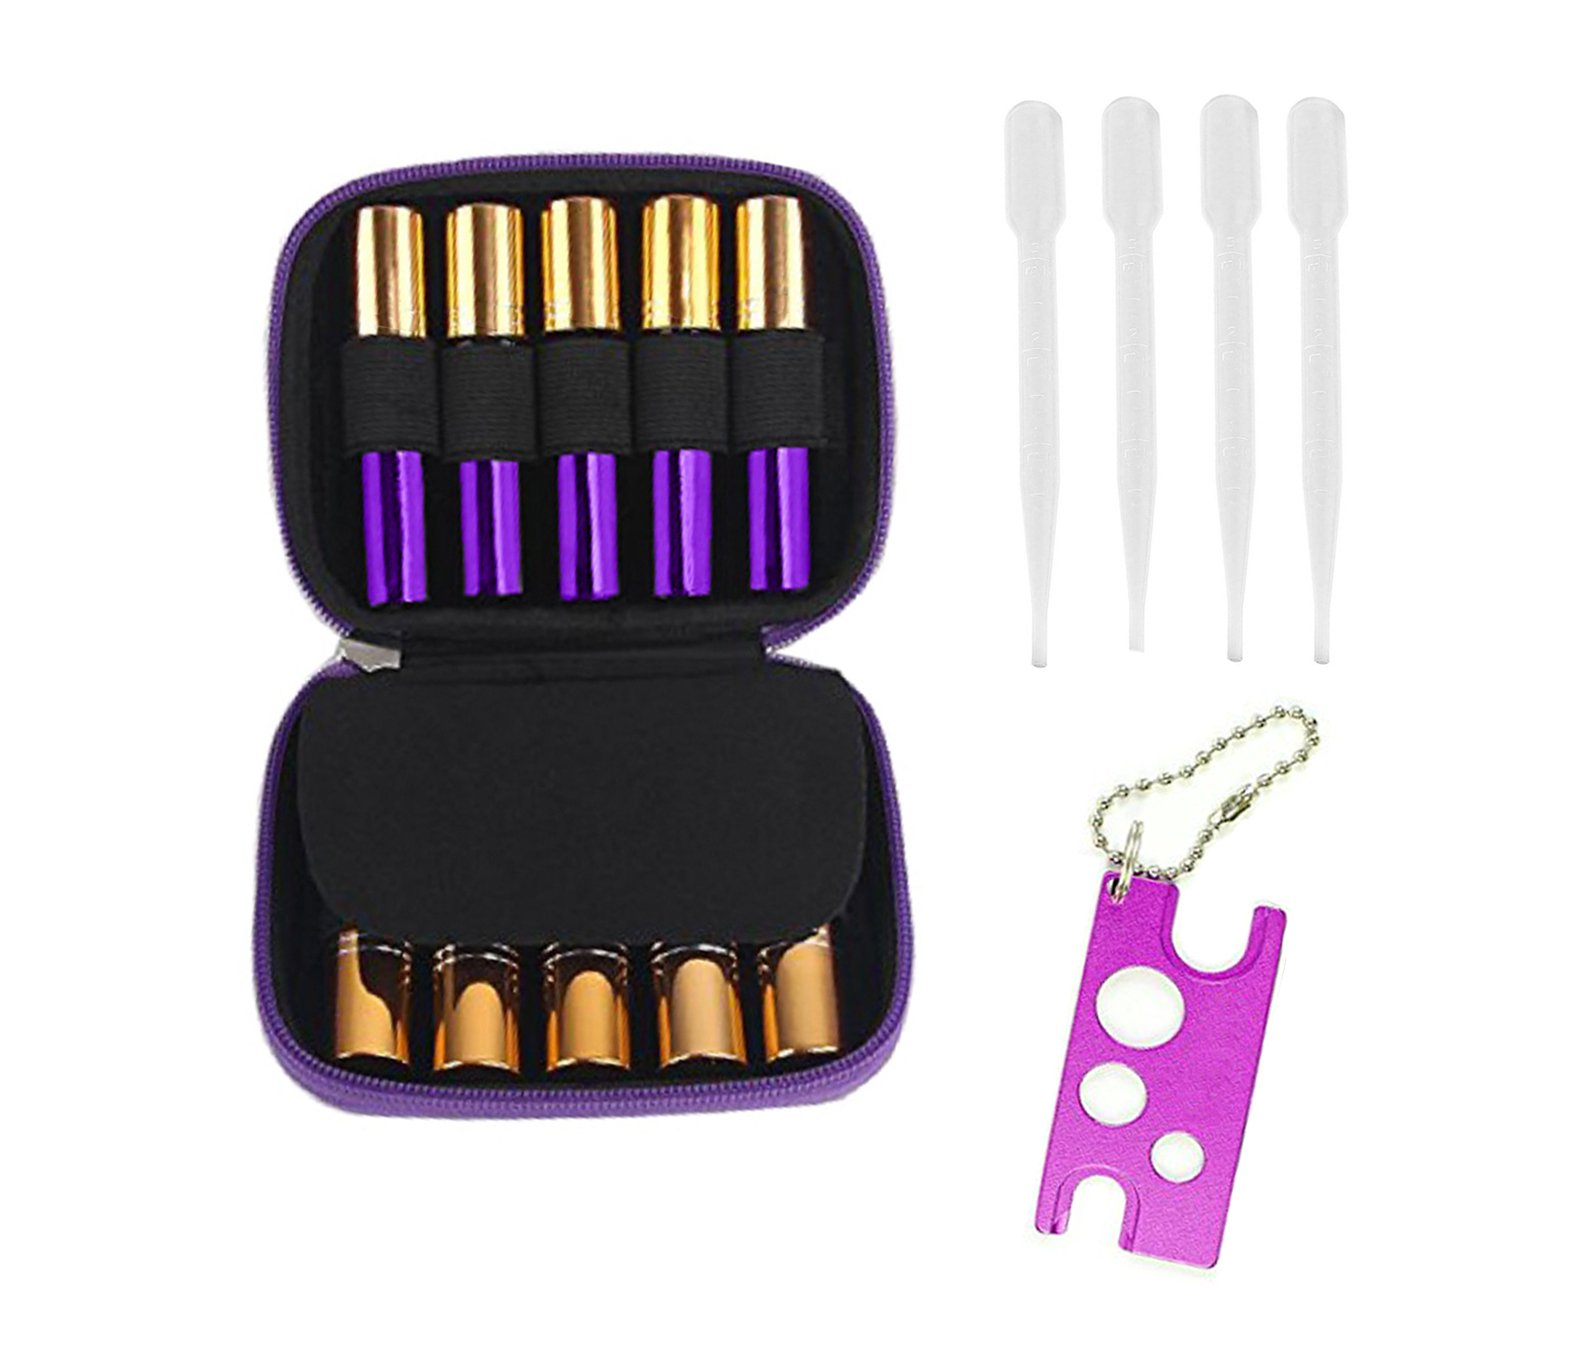 Essential Oil Carrying Case for 10-Bottle - 15ml 10ml 5ml Roller Bottles Travel Storage Bag, 1pcs Metal Essential Oils Opener with keychain,4pcs 3 ml Droppers included,Purple